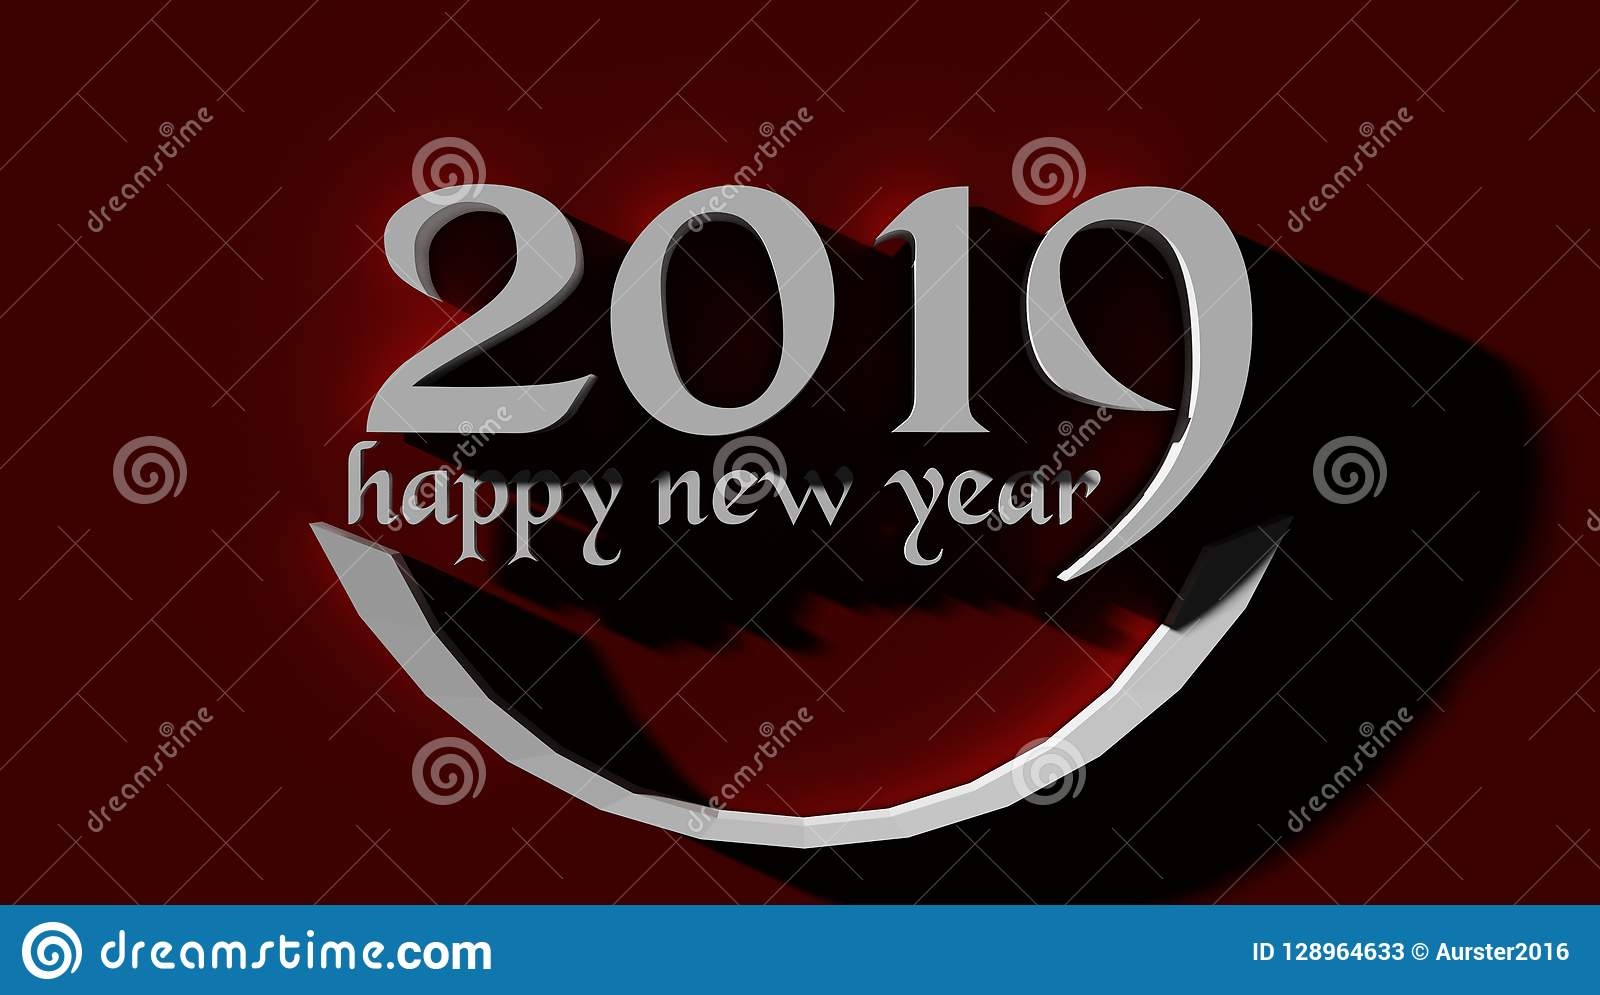 2019 Happy New Year Wallpaper Background Stock Illustration